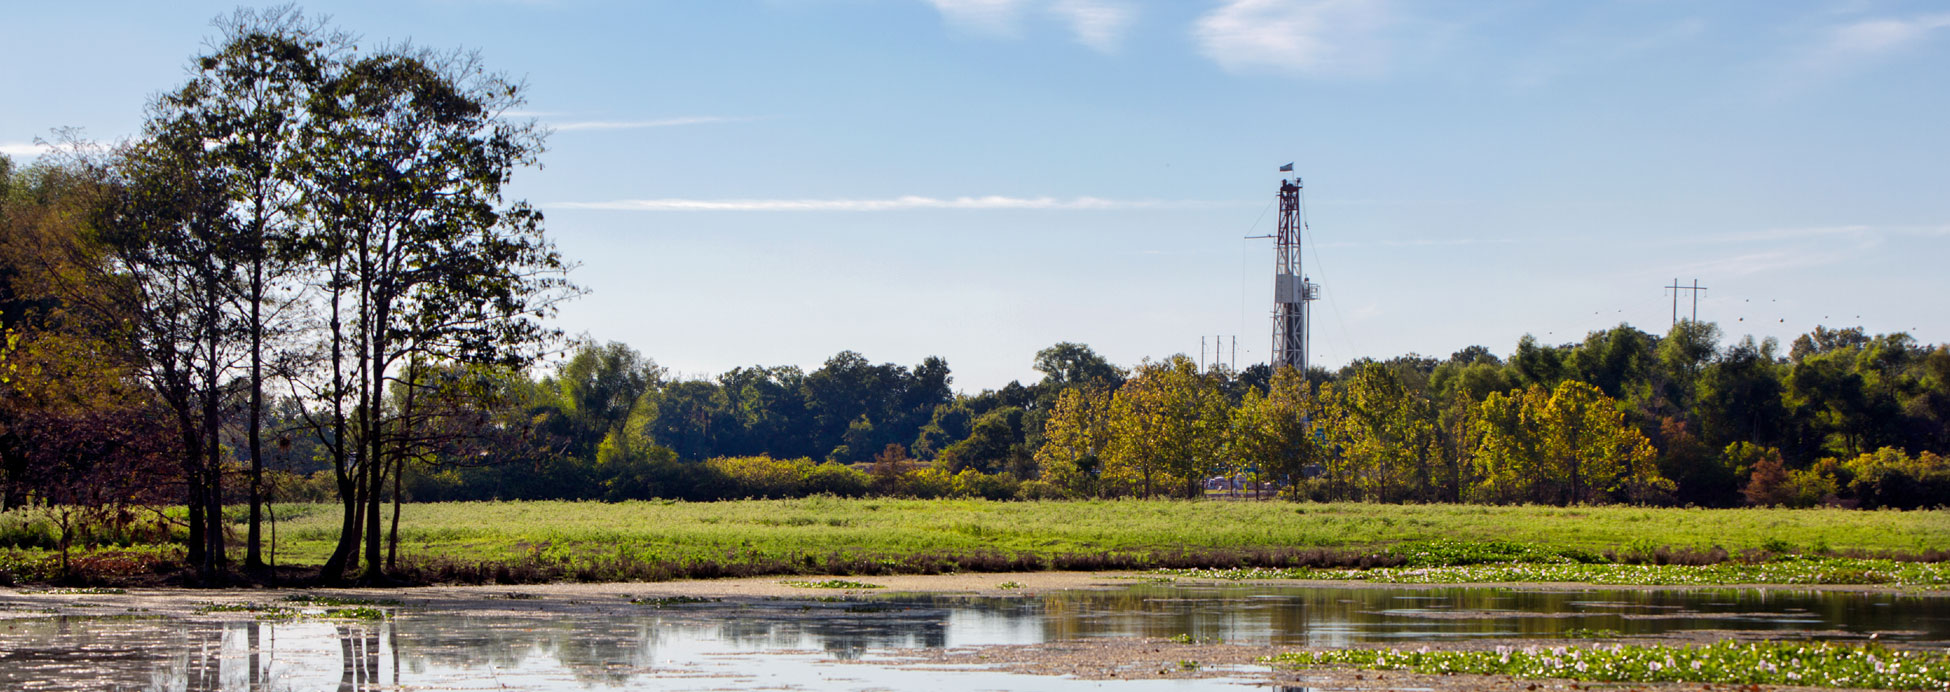 Sustainability in Oil and Gas